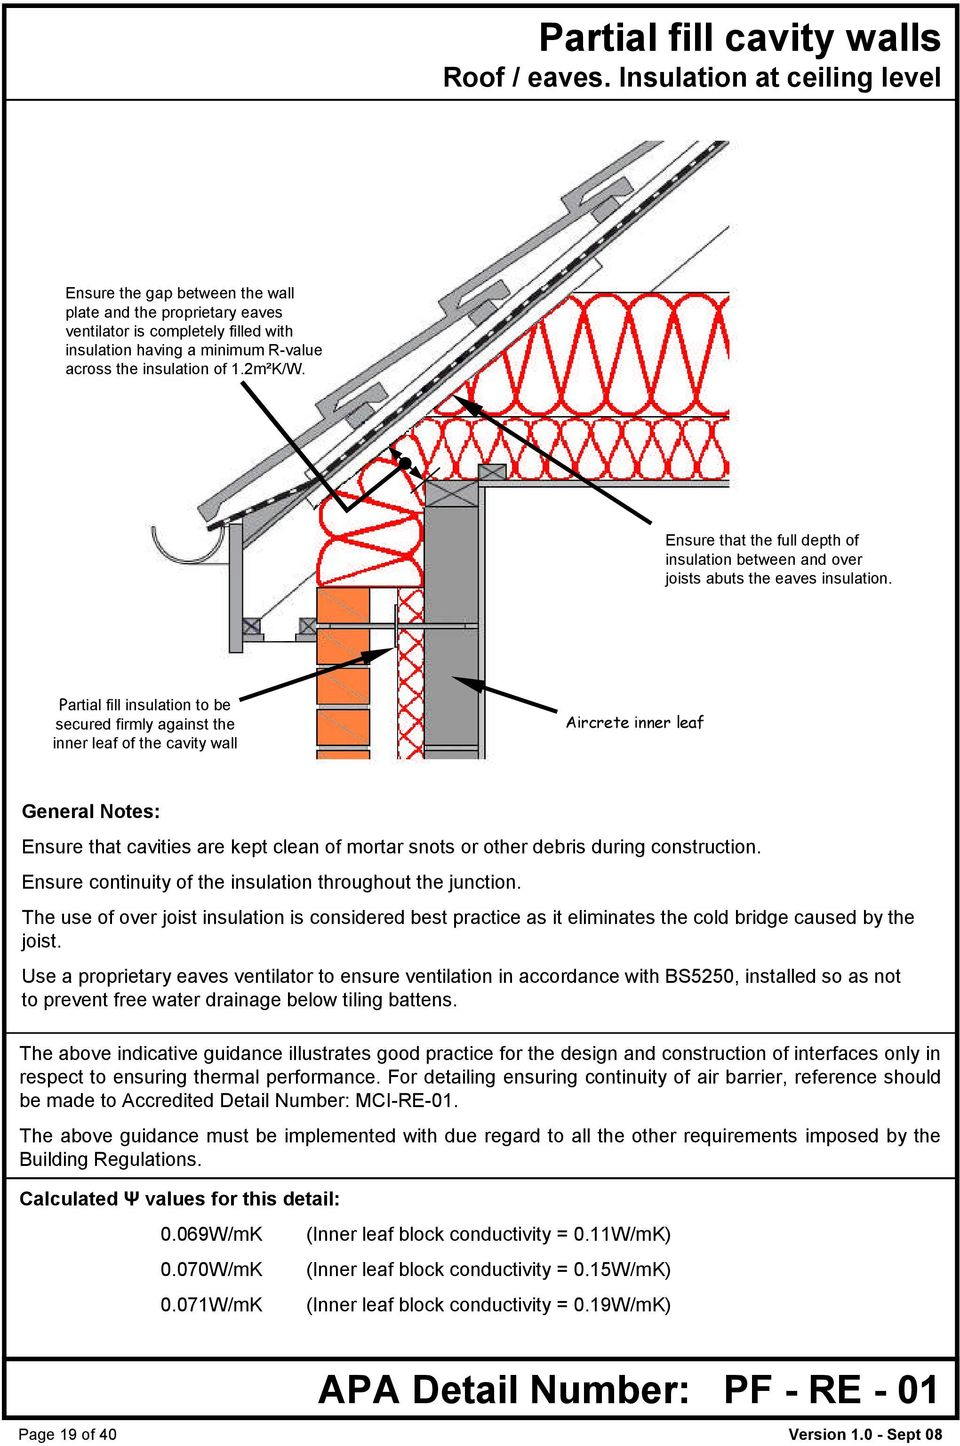 Ensure that the full depth of insulation between and over joists abuts the eaves insulation.